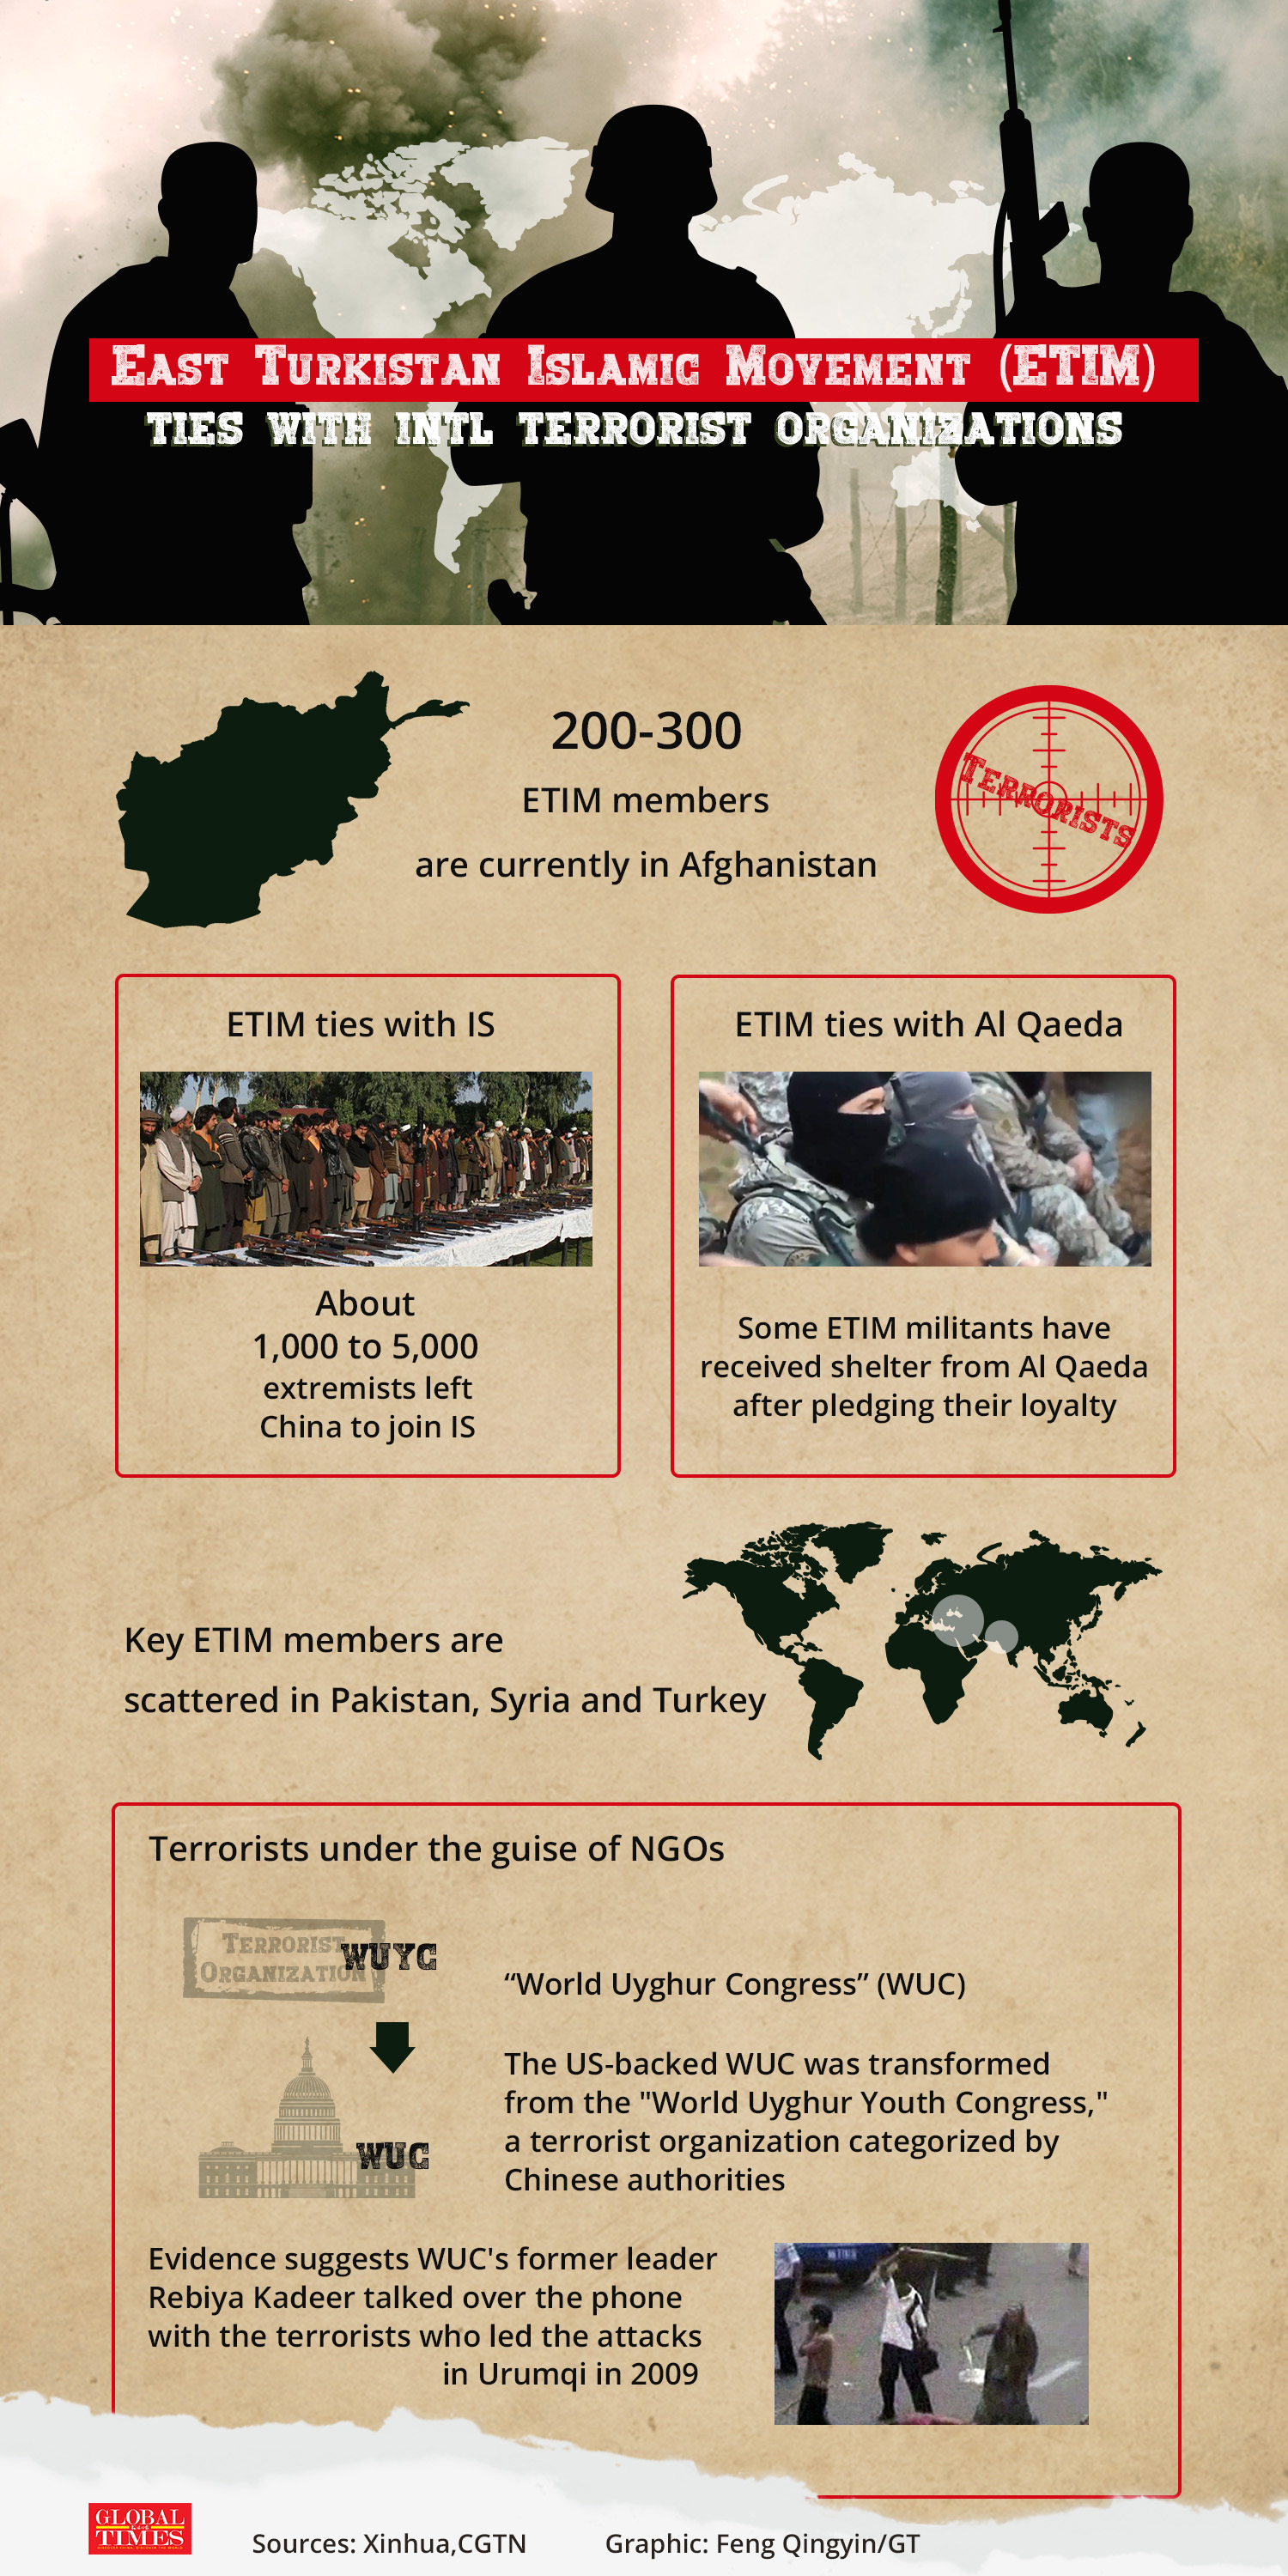 Some ETIM members have whitewashed themselves as activists or set up NGOs with support from Western forces, attempting to cover up their ties with terrorist organizations including ISIS and Al Qaeda. Graphic: Feng Qingyin/GT